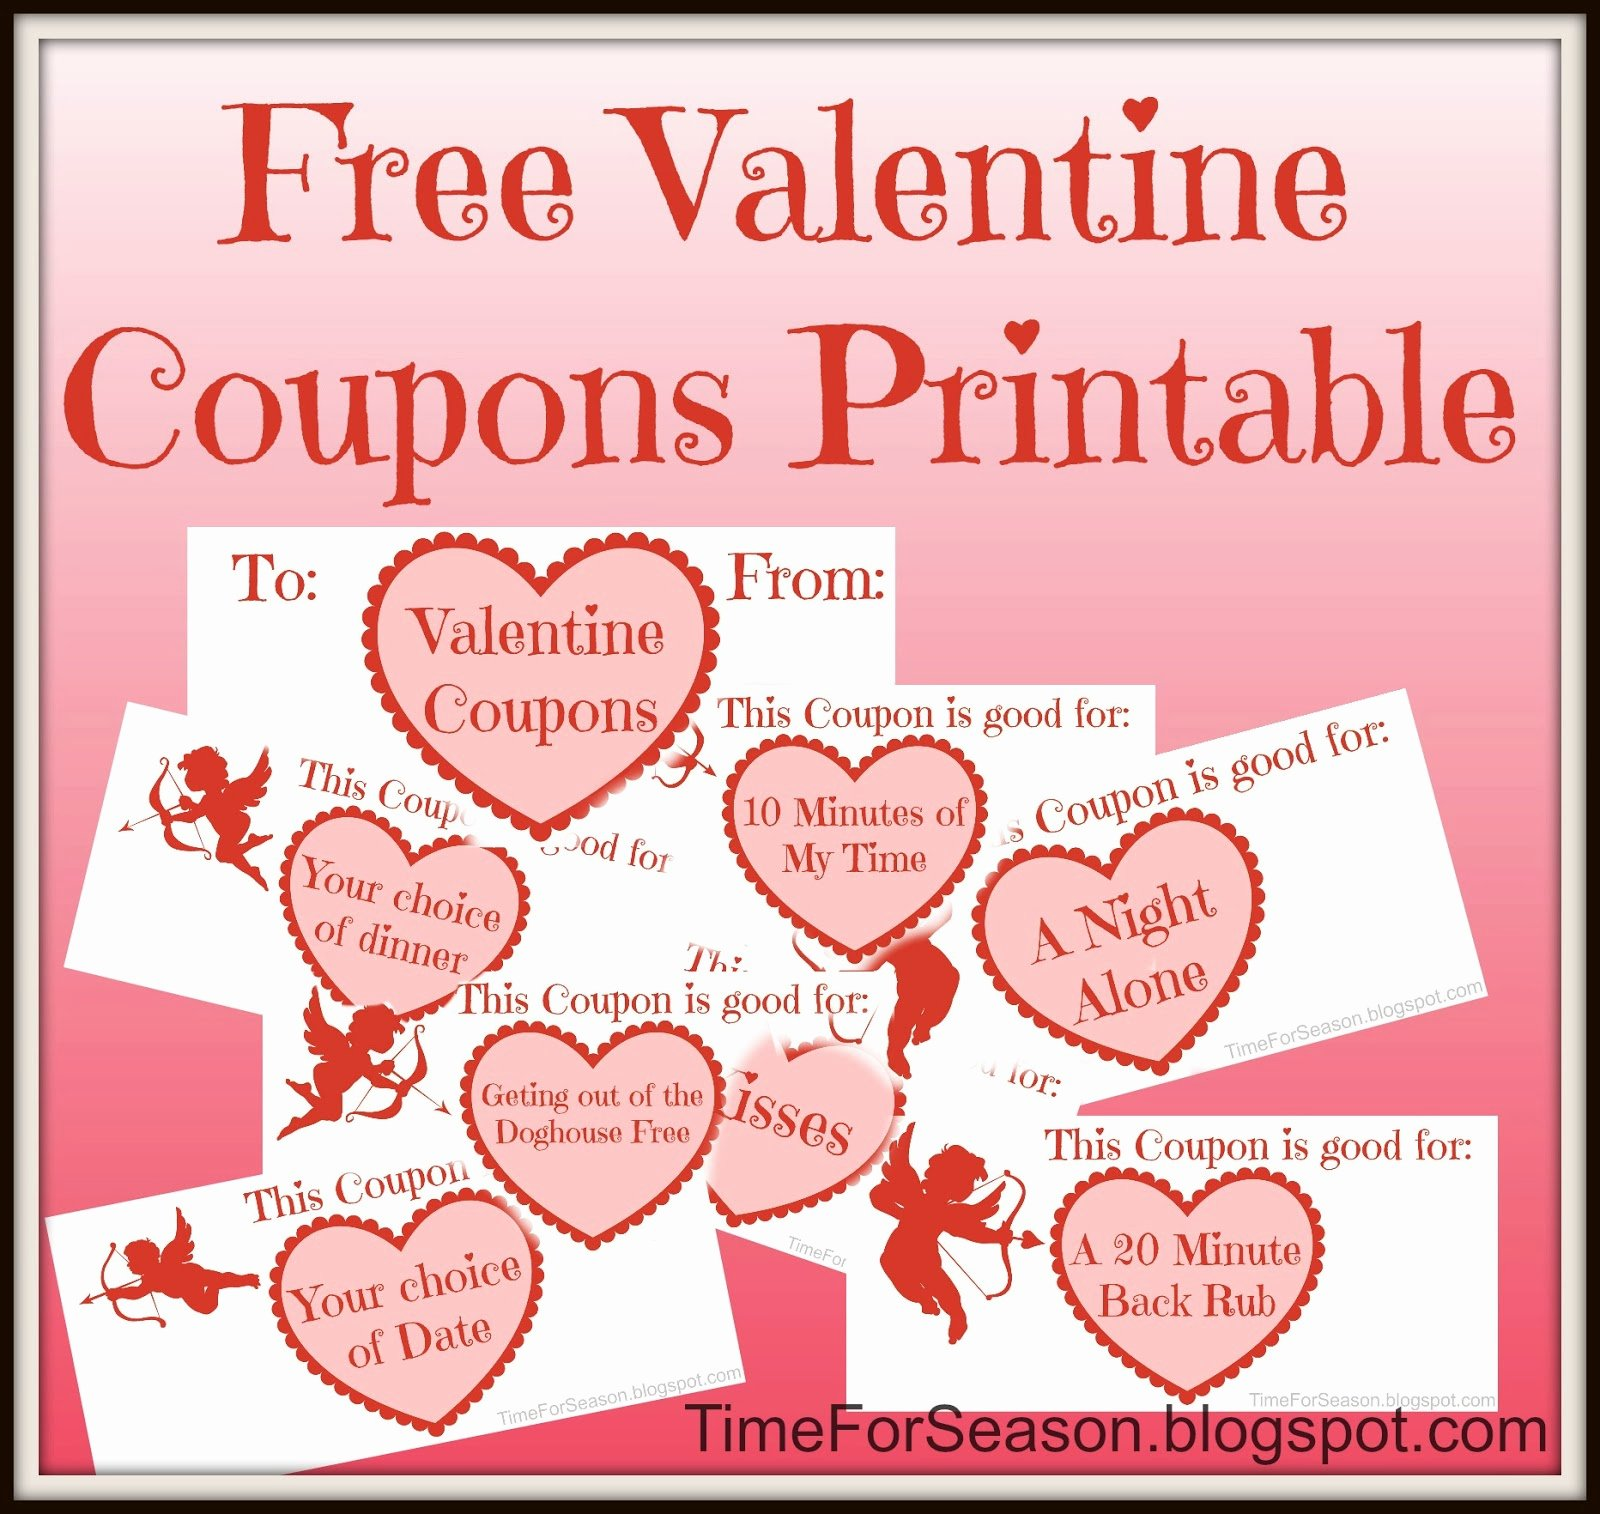 Valentine Day Coupon Template Fresh Valentine Coupons Free Printable